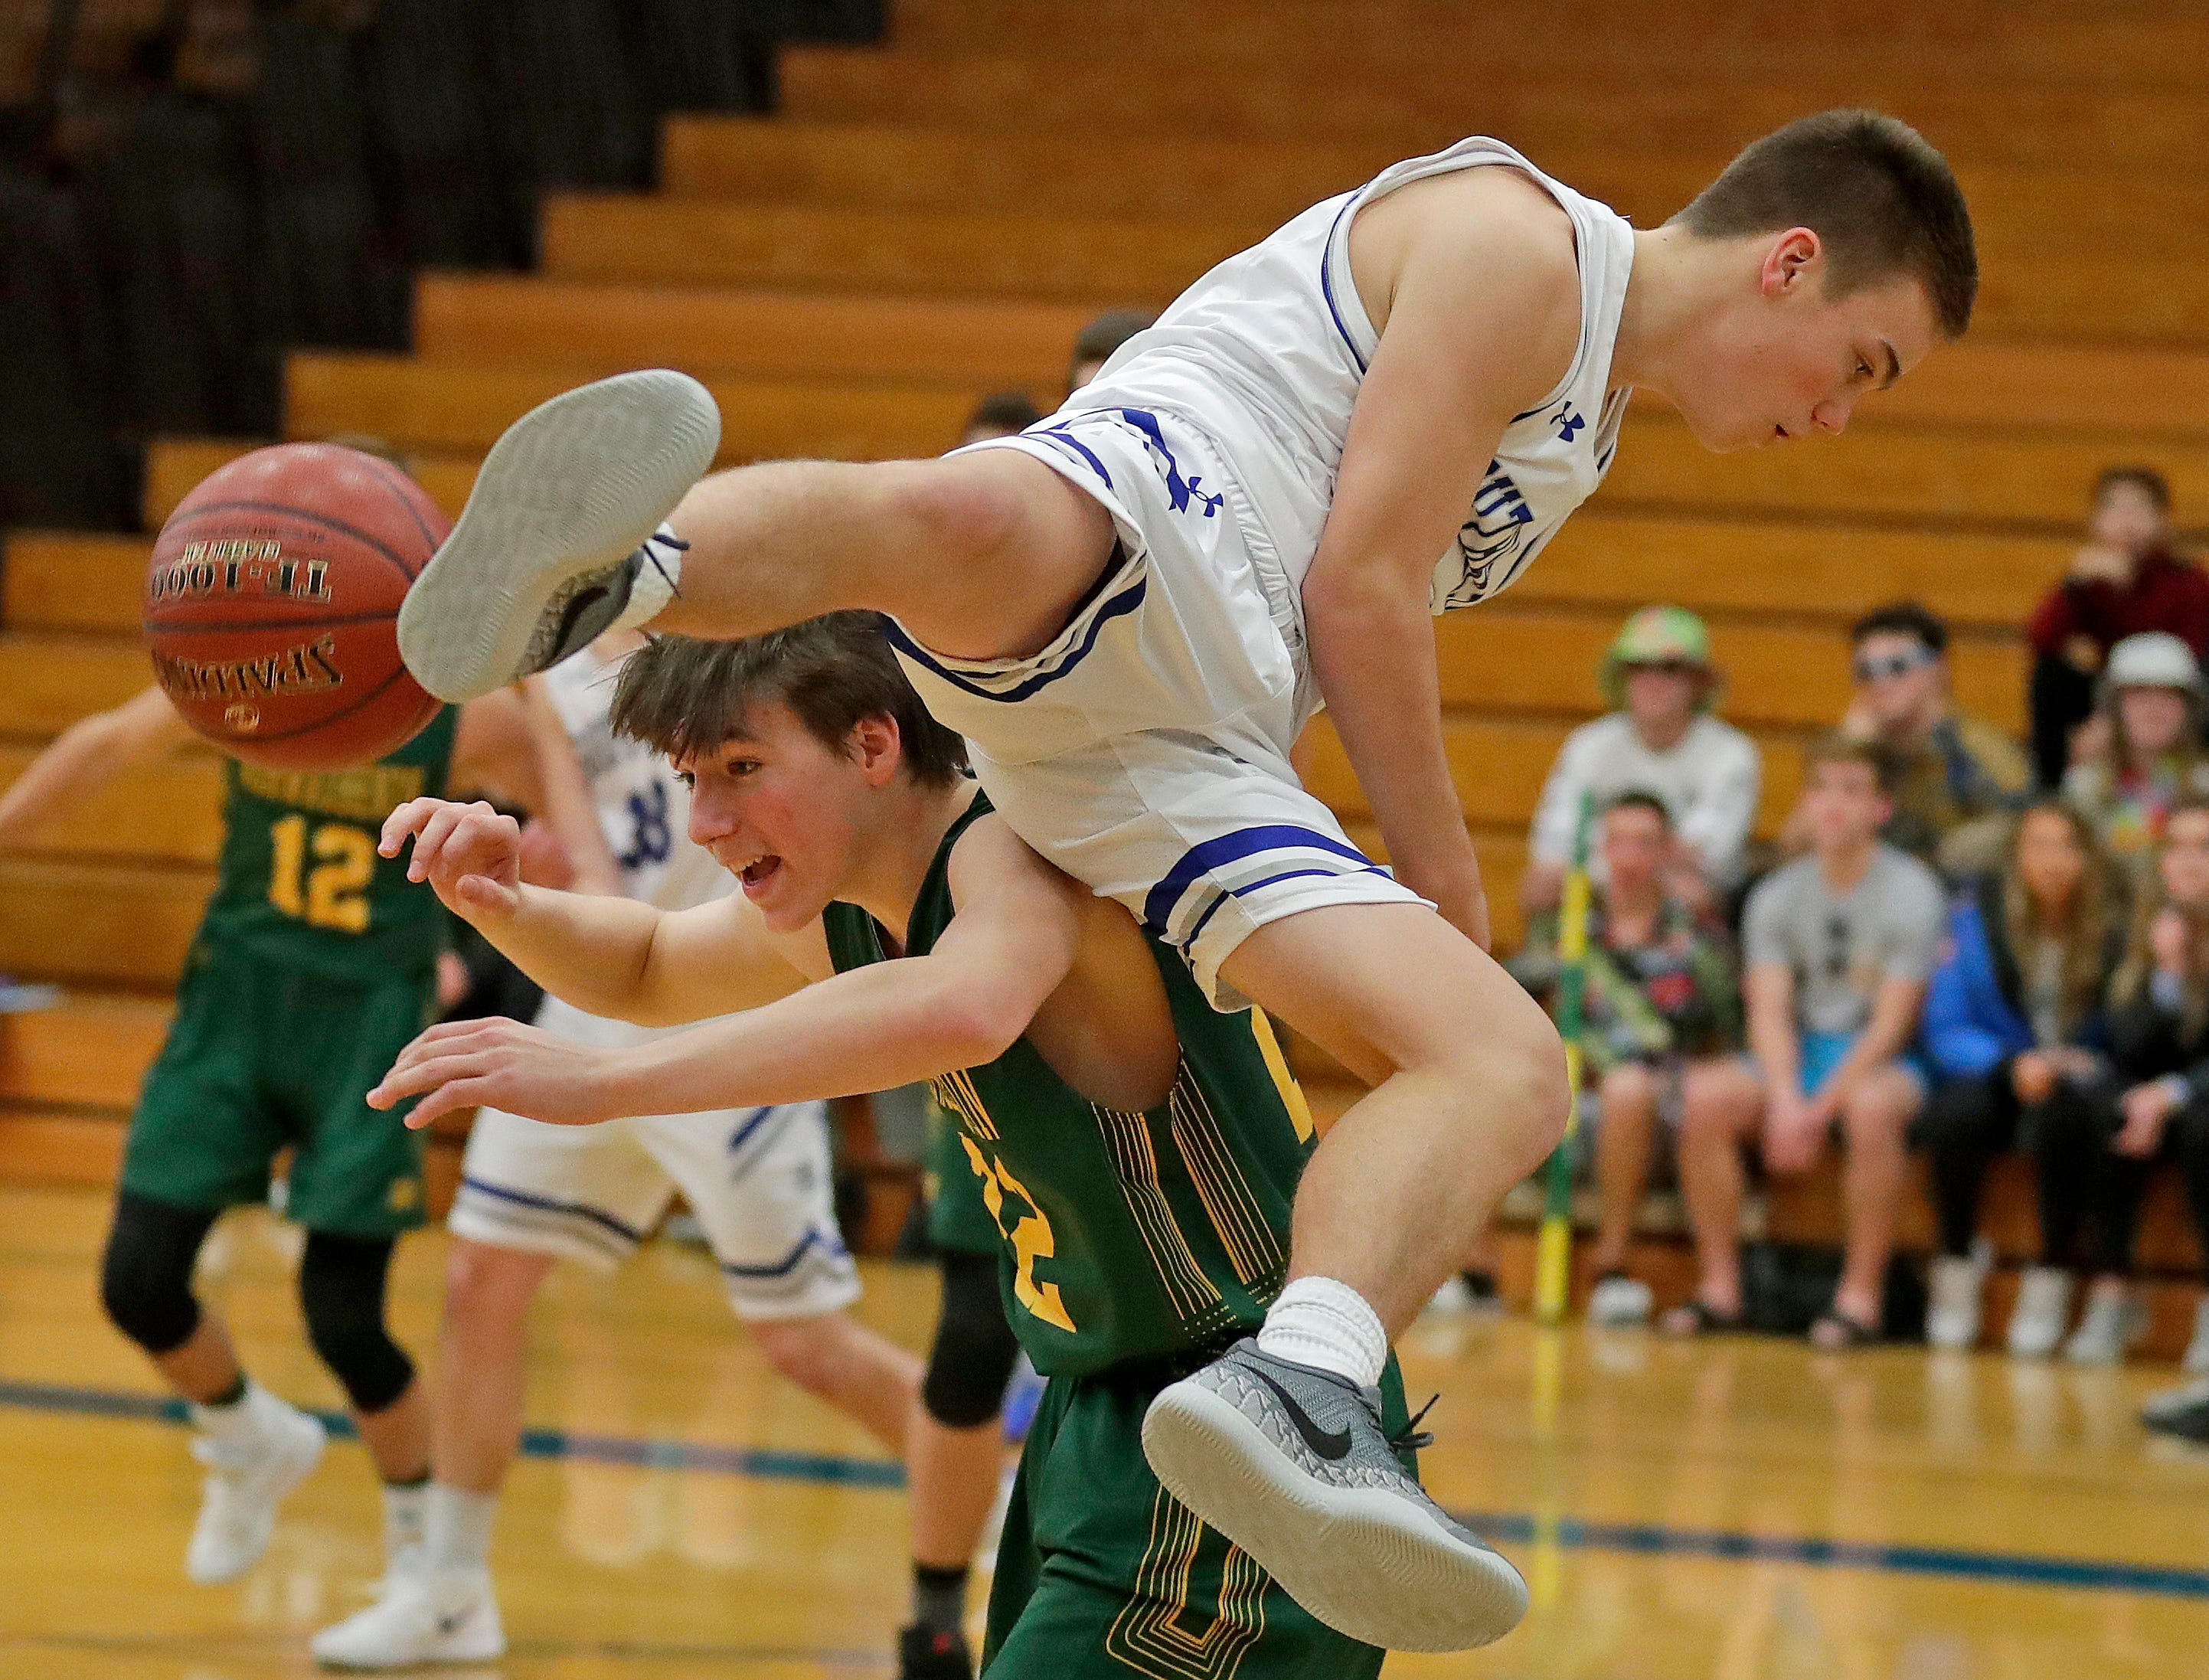 Southwest's Owen Stieber lands on top of Ashwaubenon High School's Christopher Morgan during FRCC basketball action  Tuesday, December 11, 2018 at Southwest High School in Green Bay, Wis.